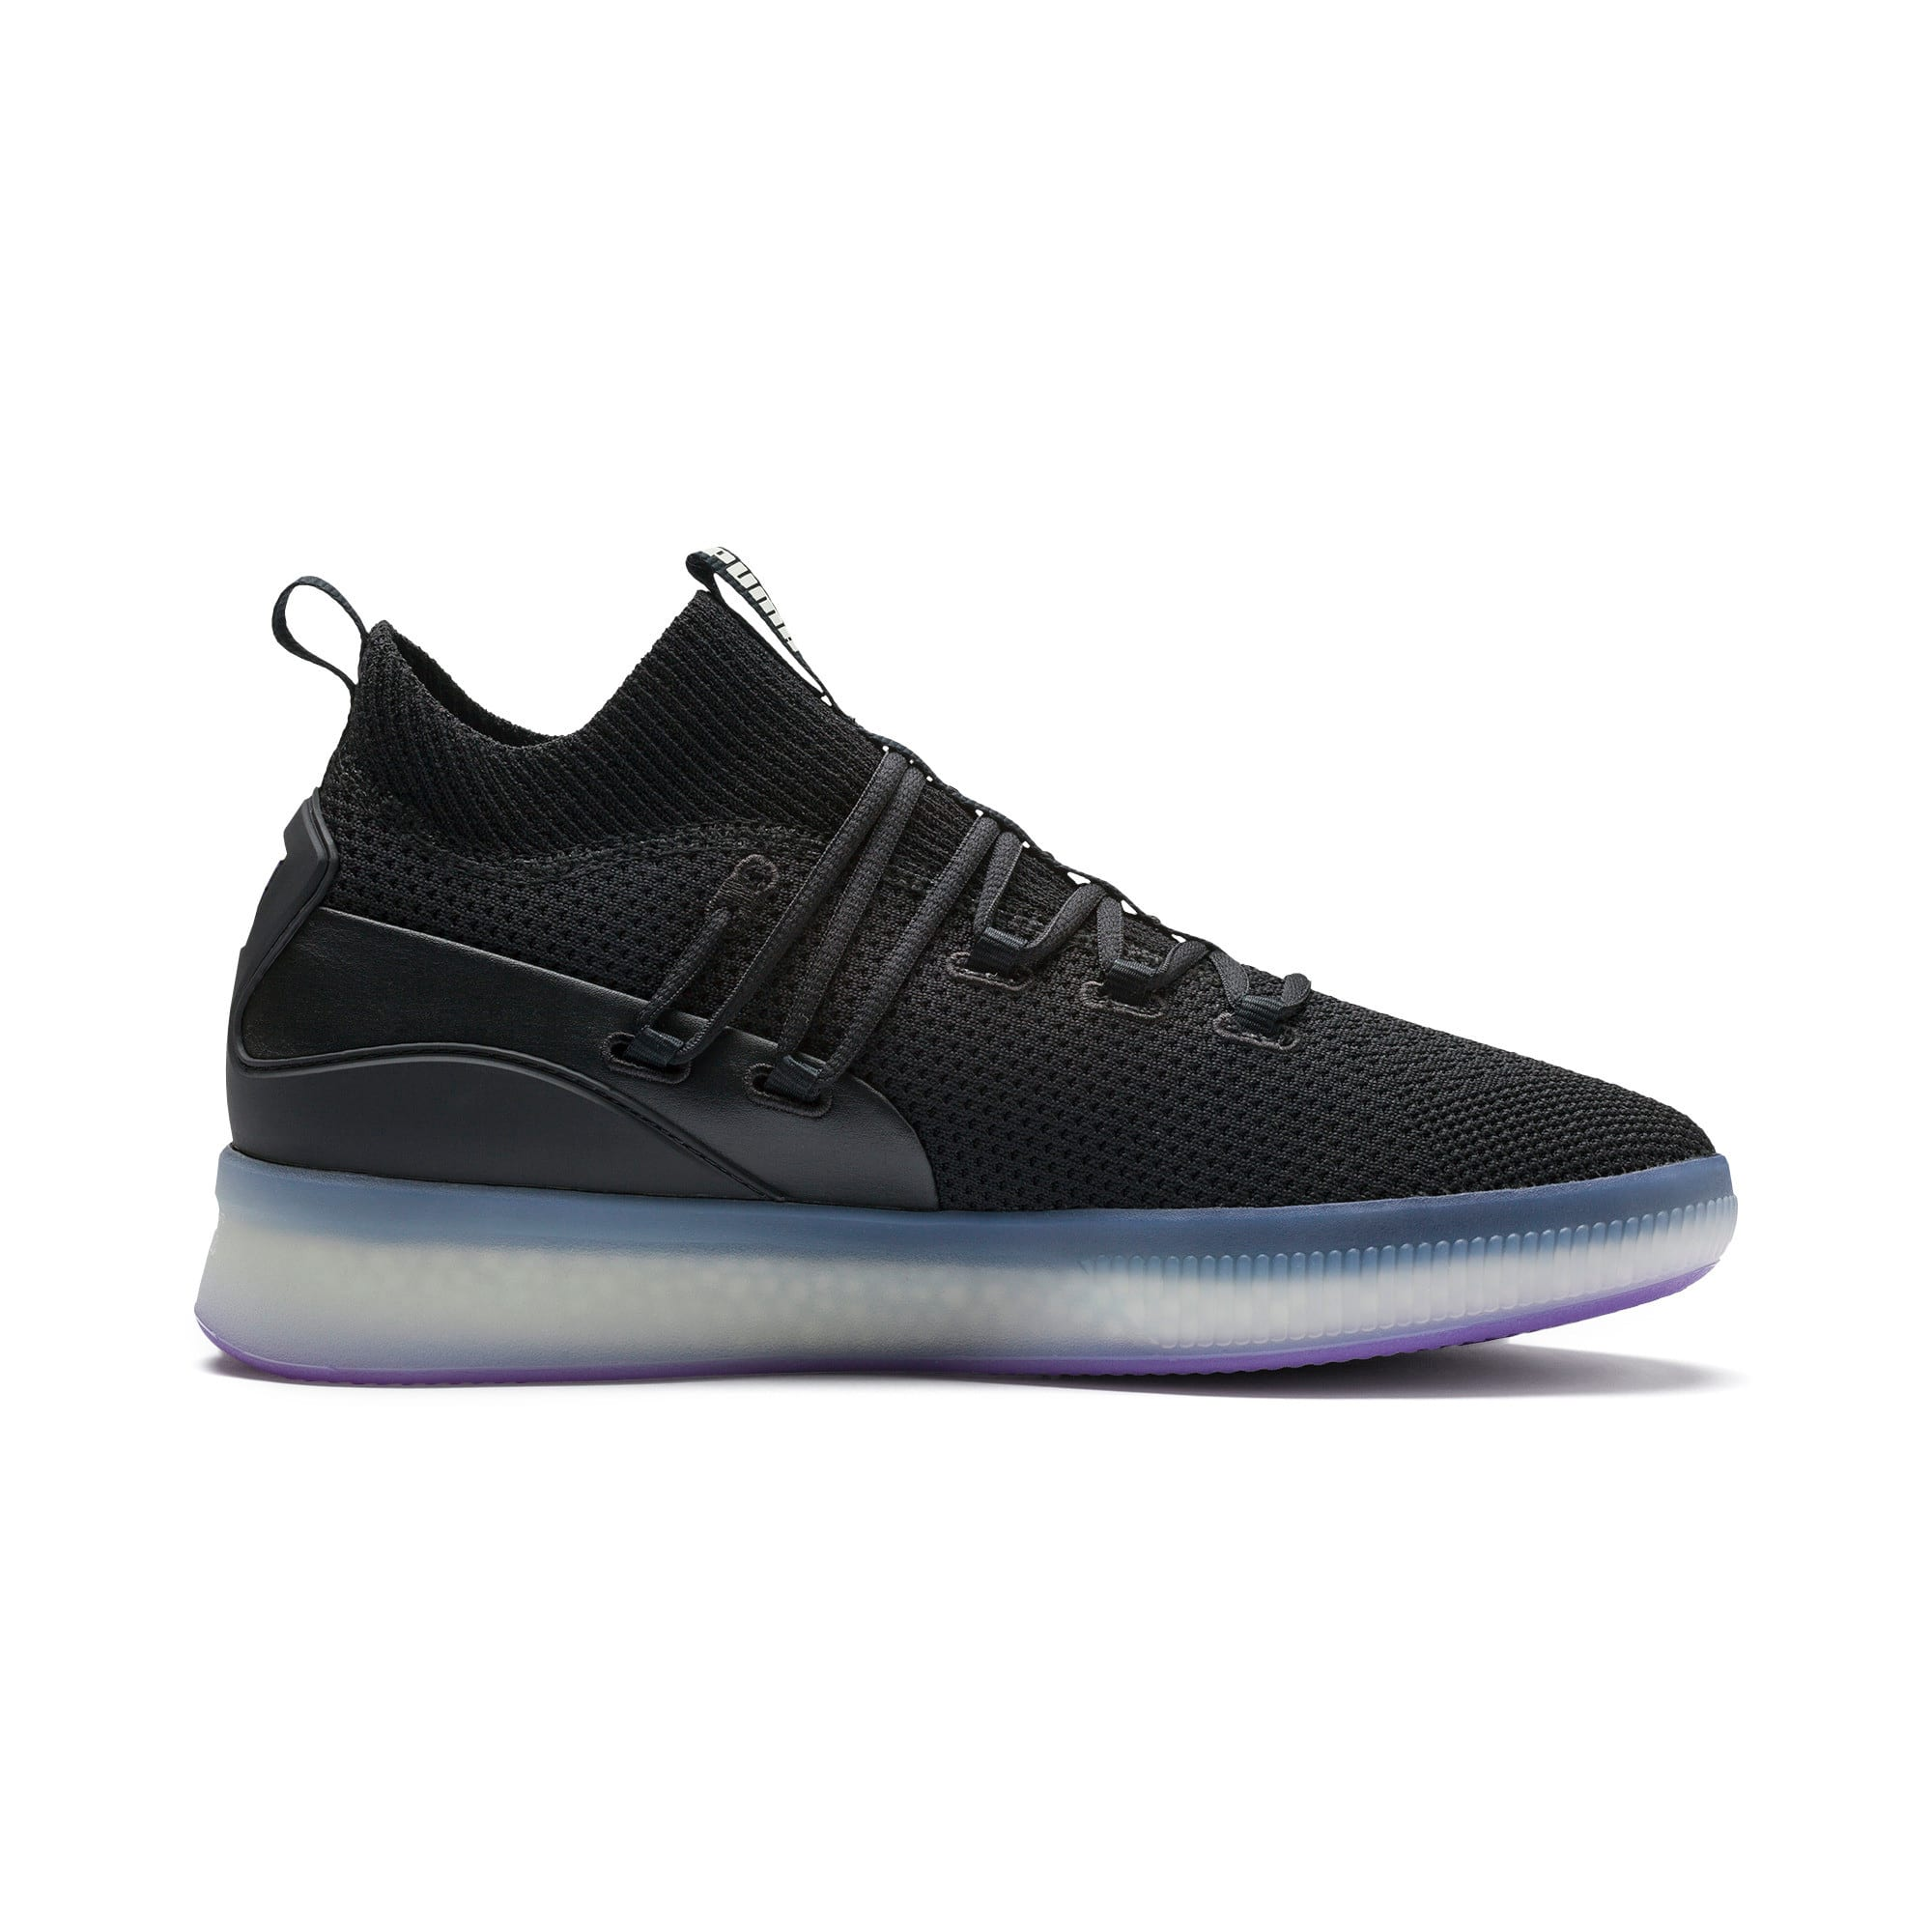 Thumbnail 5 of Clyde Court Basketball Shoes, Puma Black-ELECTRIC PURPLE, medium